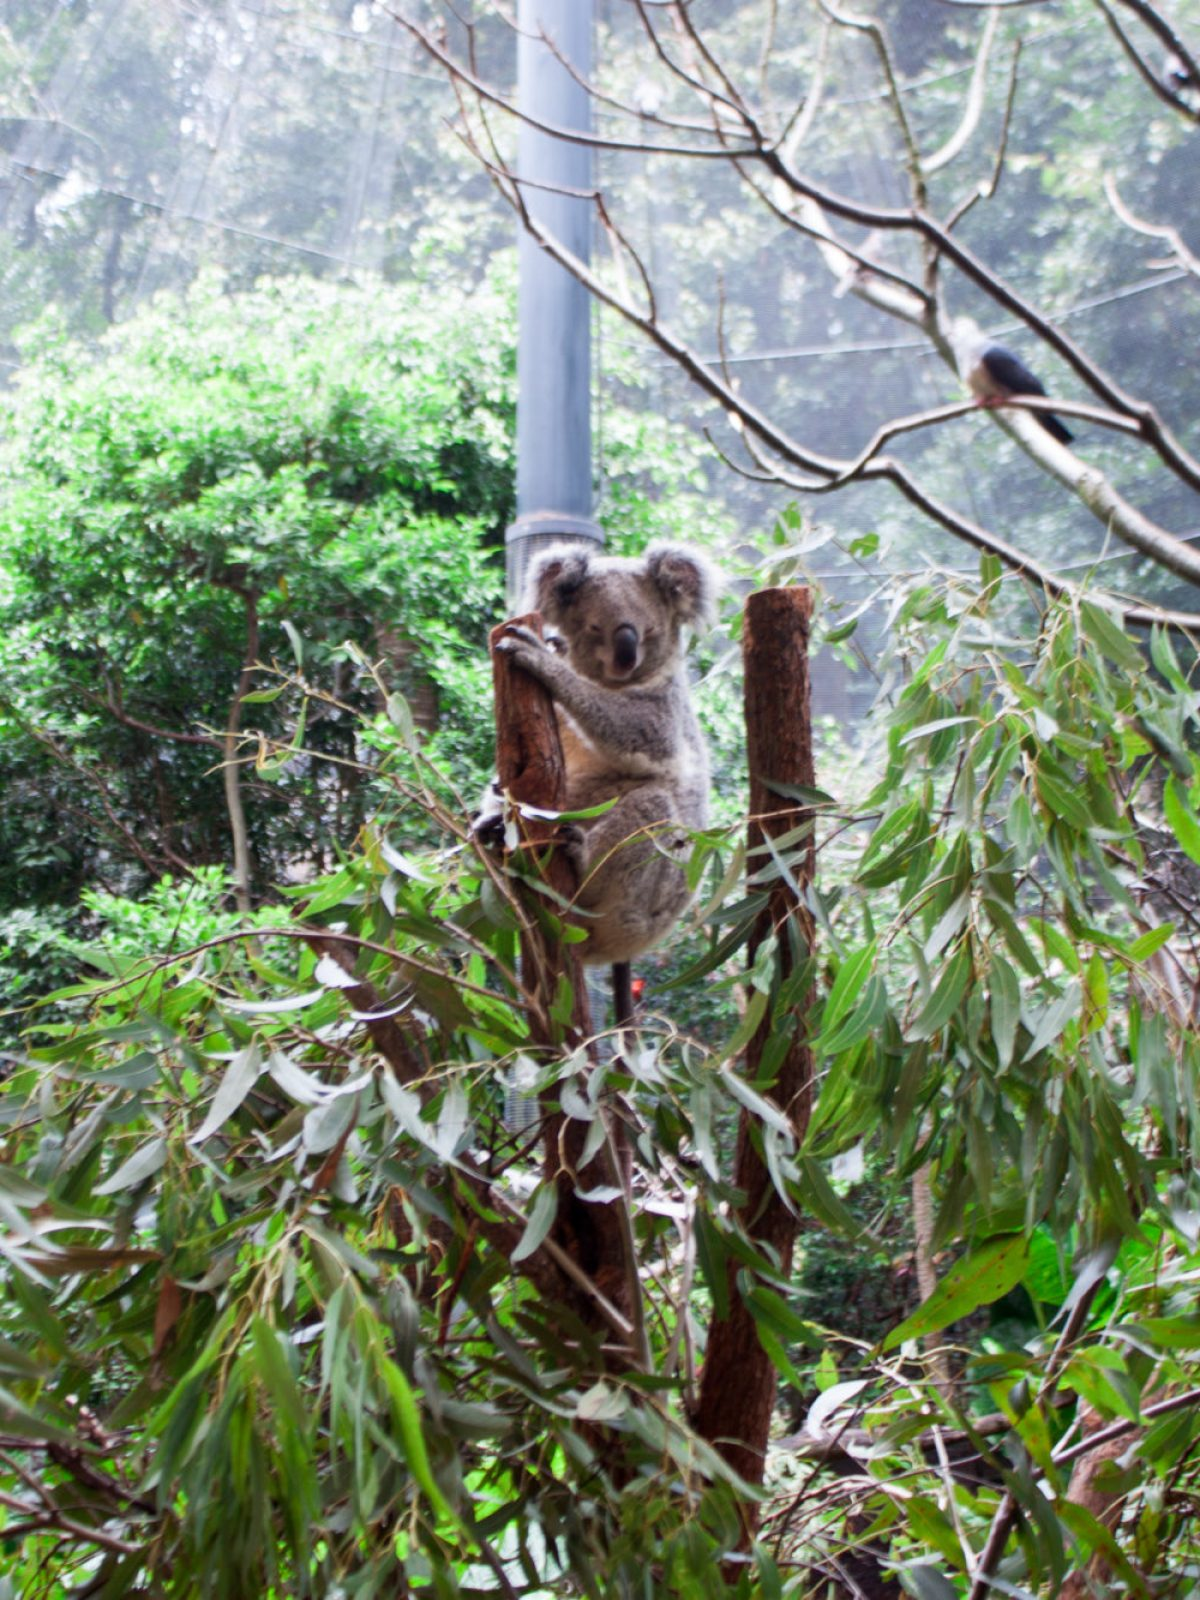 blackbutt reserve, australian wildlife, where to see koalas in Australia, where to see koalas near sydney, where to see kangaroos in australia, where to see kangaroos near Sydney, where to see wallabies in australia, where to see wallabies near Sydney, animals in australia